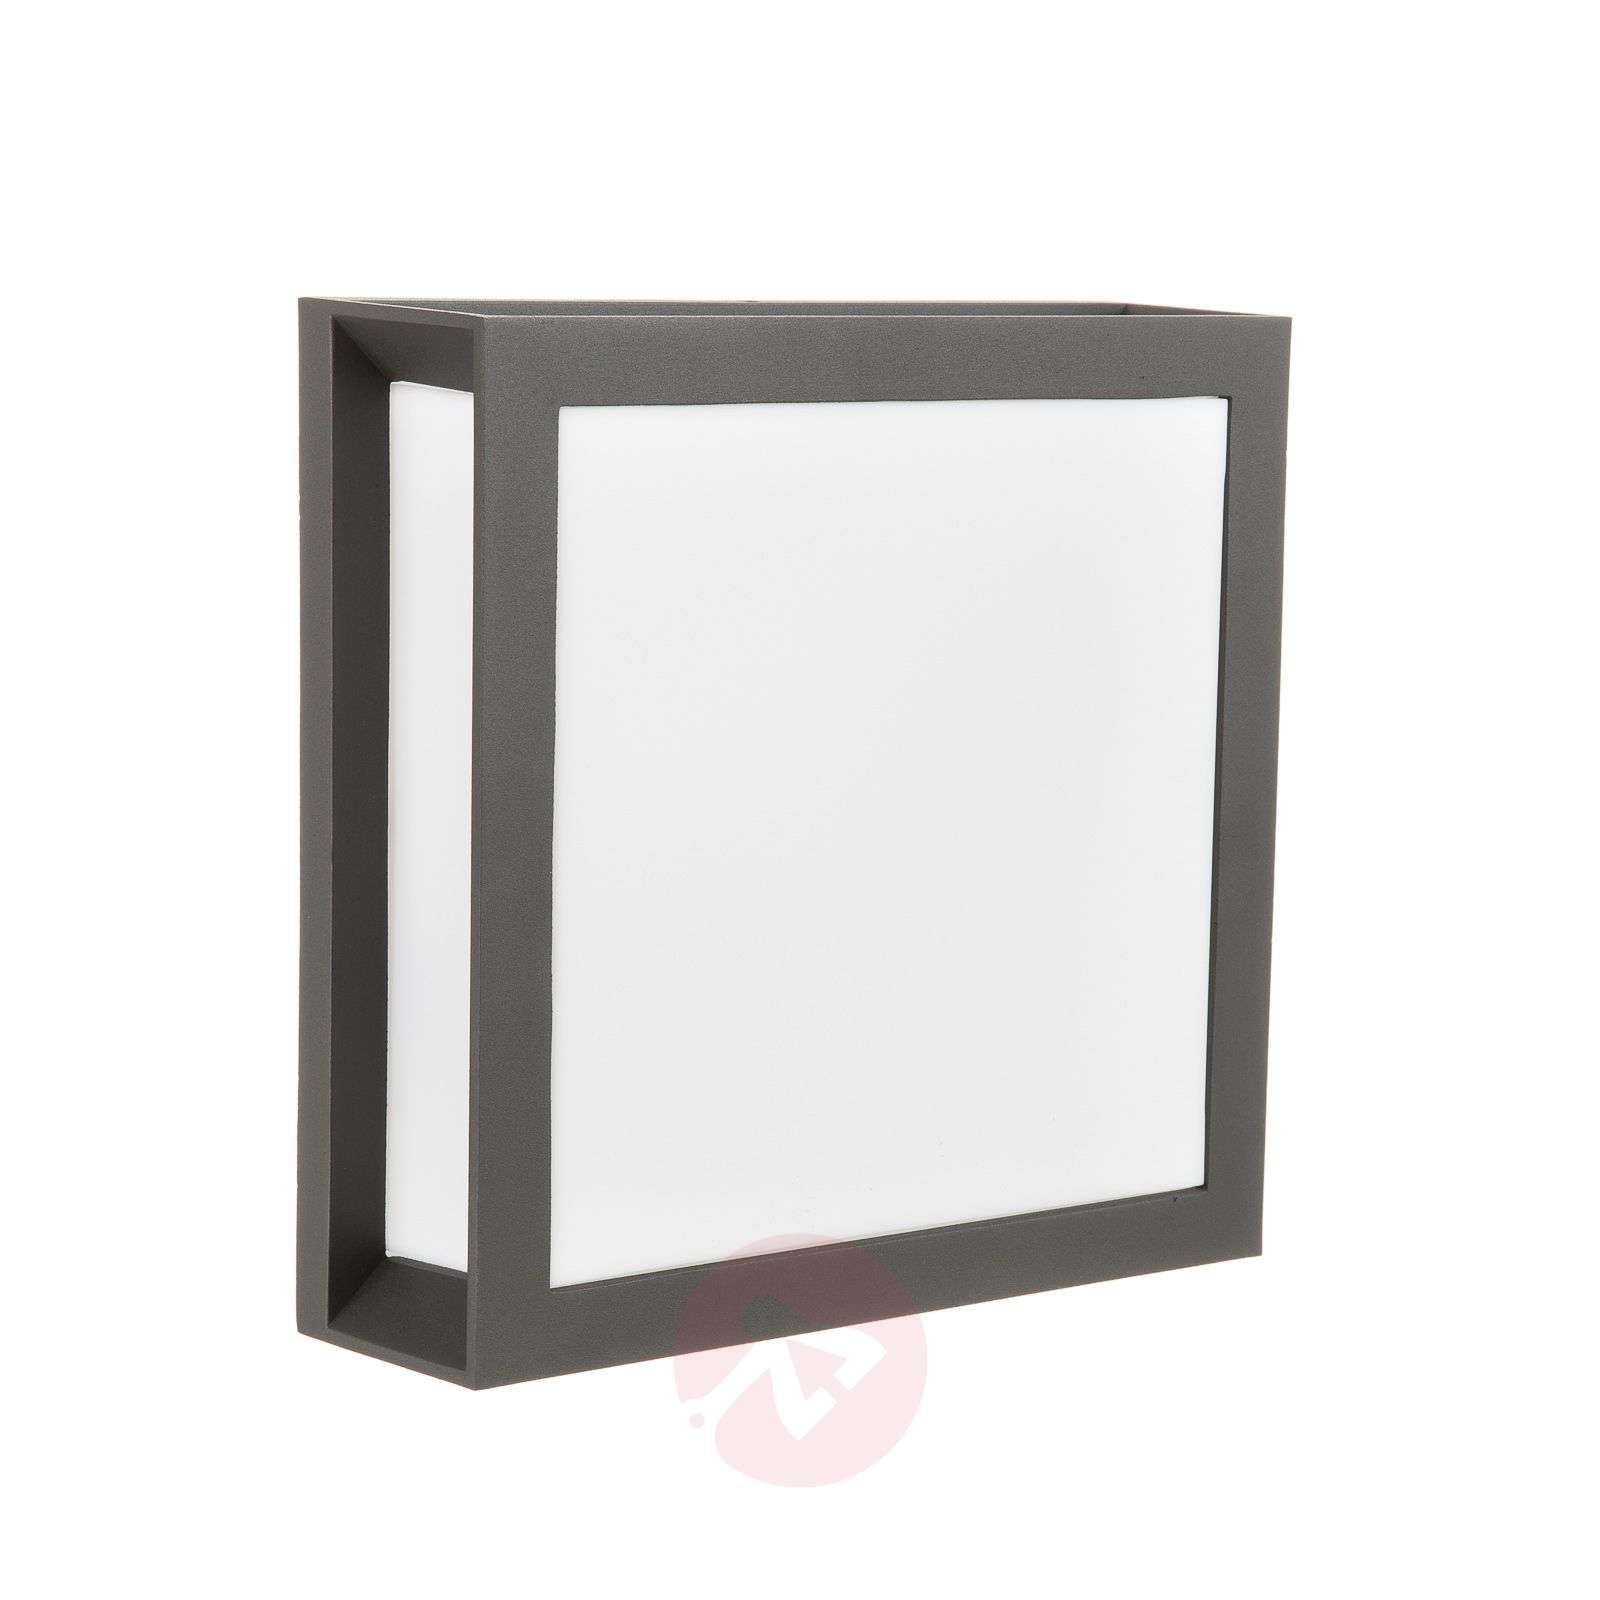 Anthracite-coloured outdoor wall lamp Henry, IP44-7255350-01